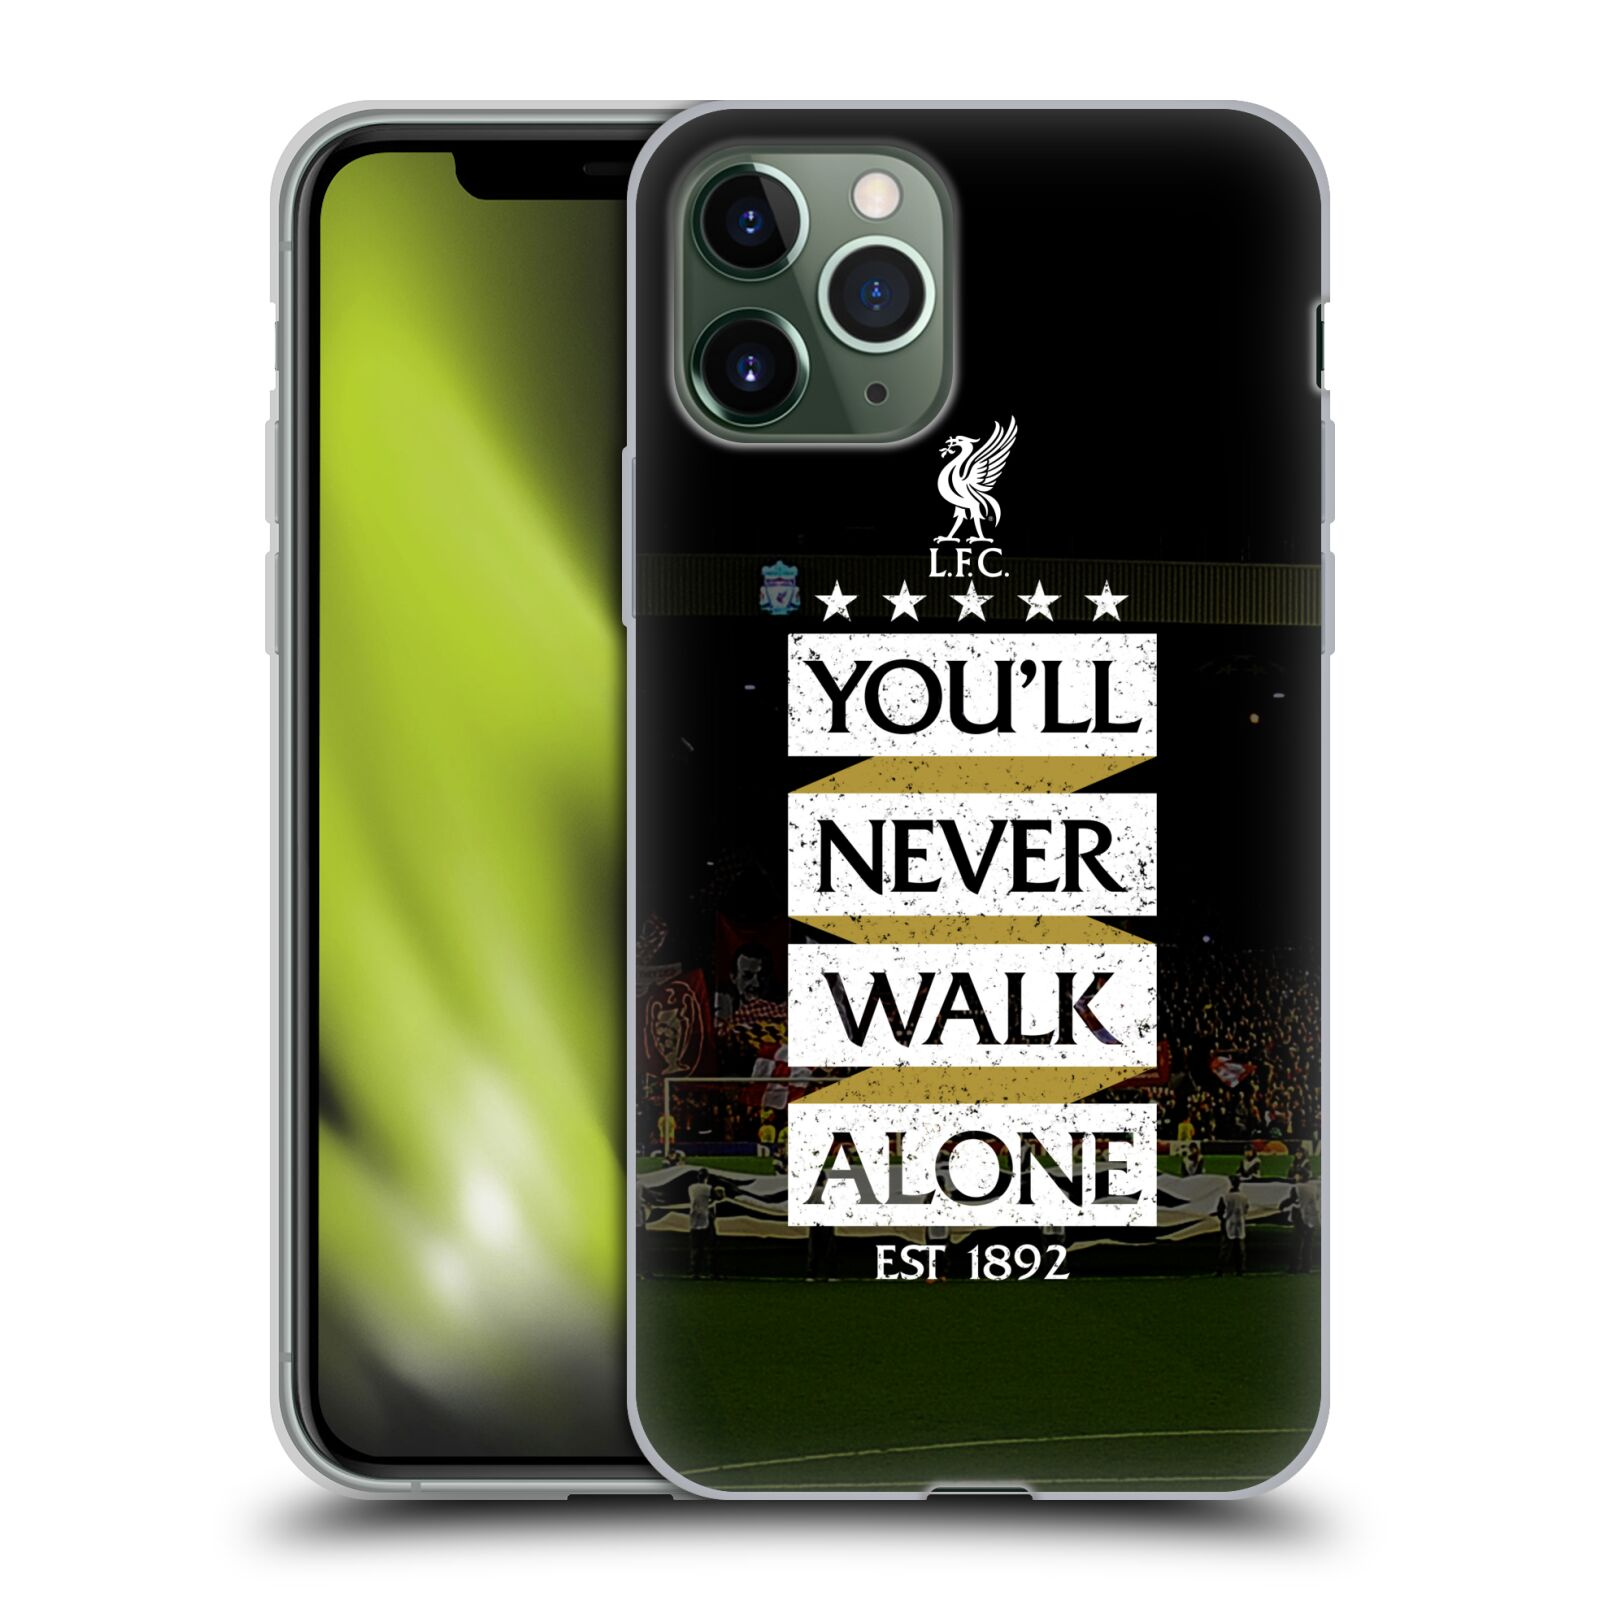 3d kryt na iphone 8 | Silikonové pouzdro na mobil Apple iPhone 11 Pro - Head Case - LFC You'll Never Walk Alone